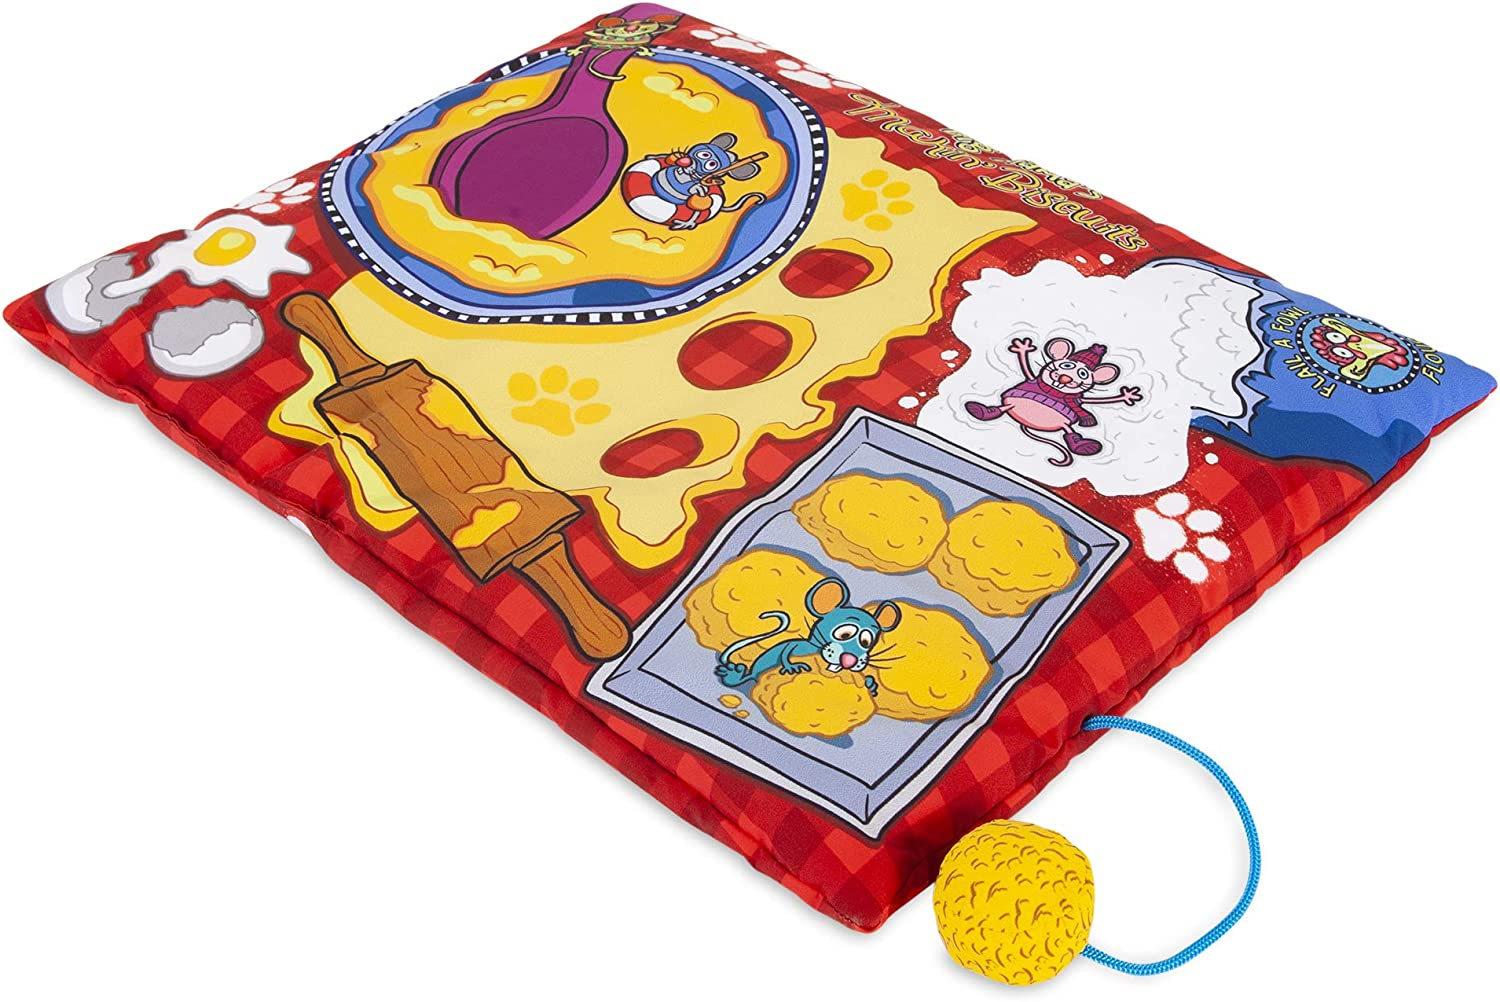 7. Fat Cat Big Mama's Makin' Biscuits Boogie Mat Cat Toy with Catnip